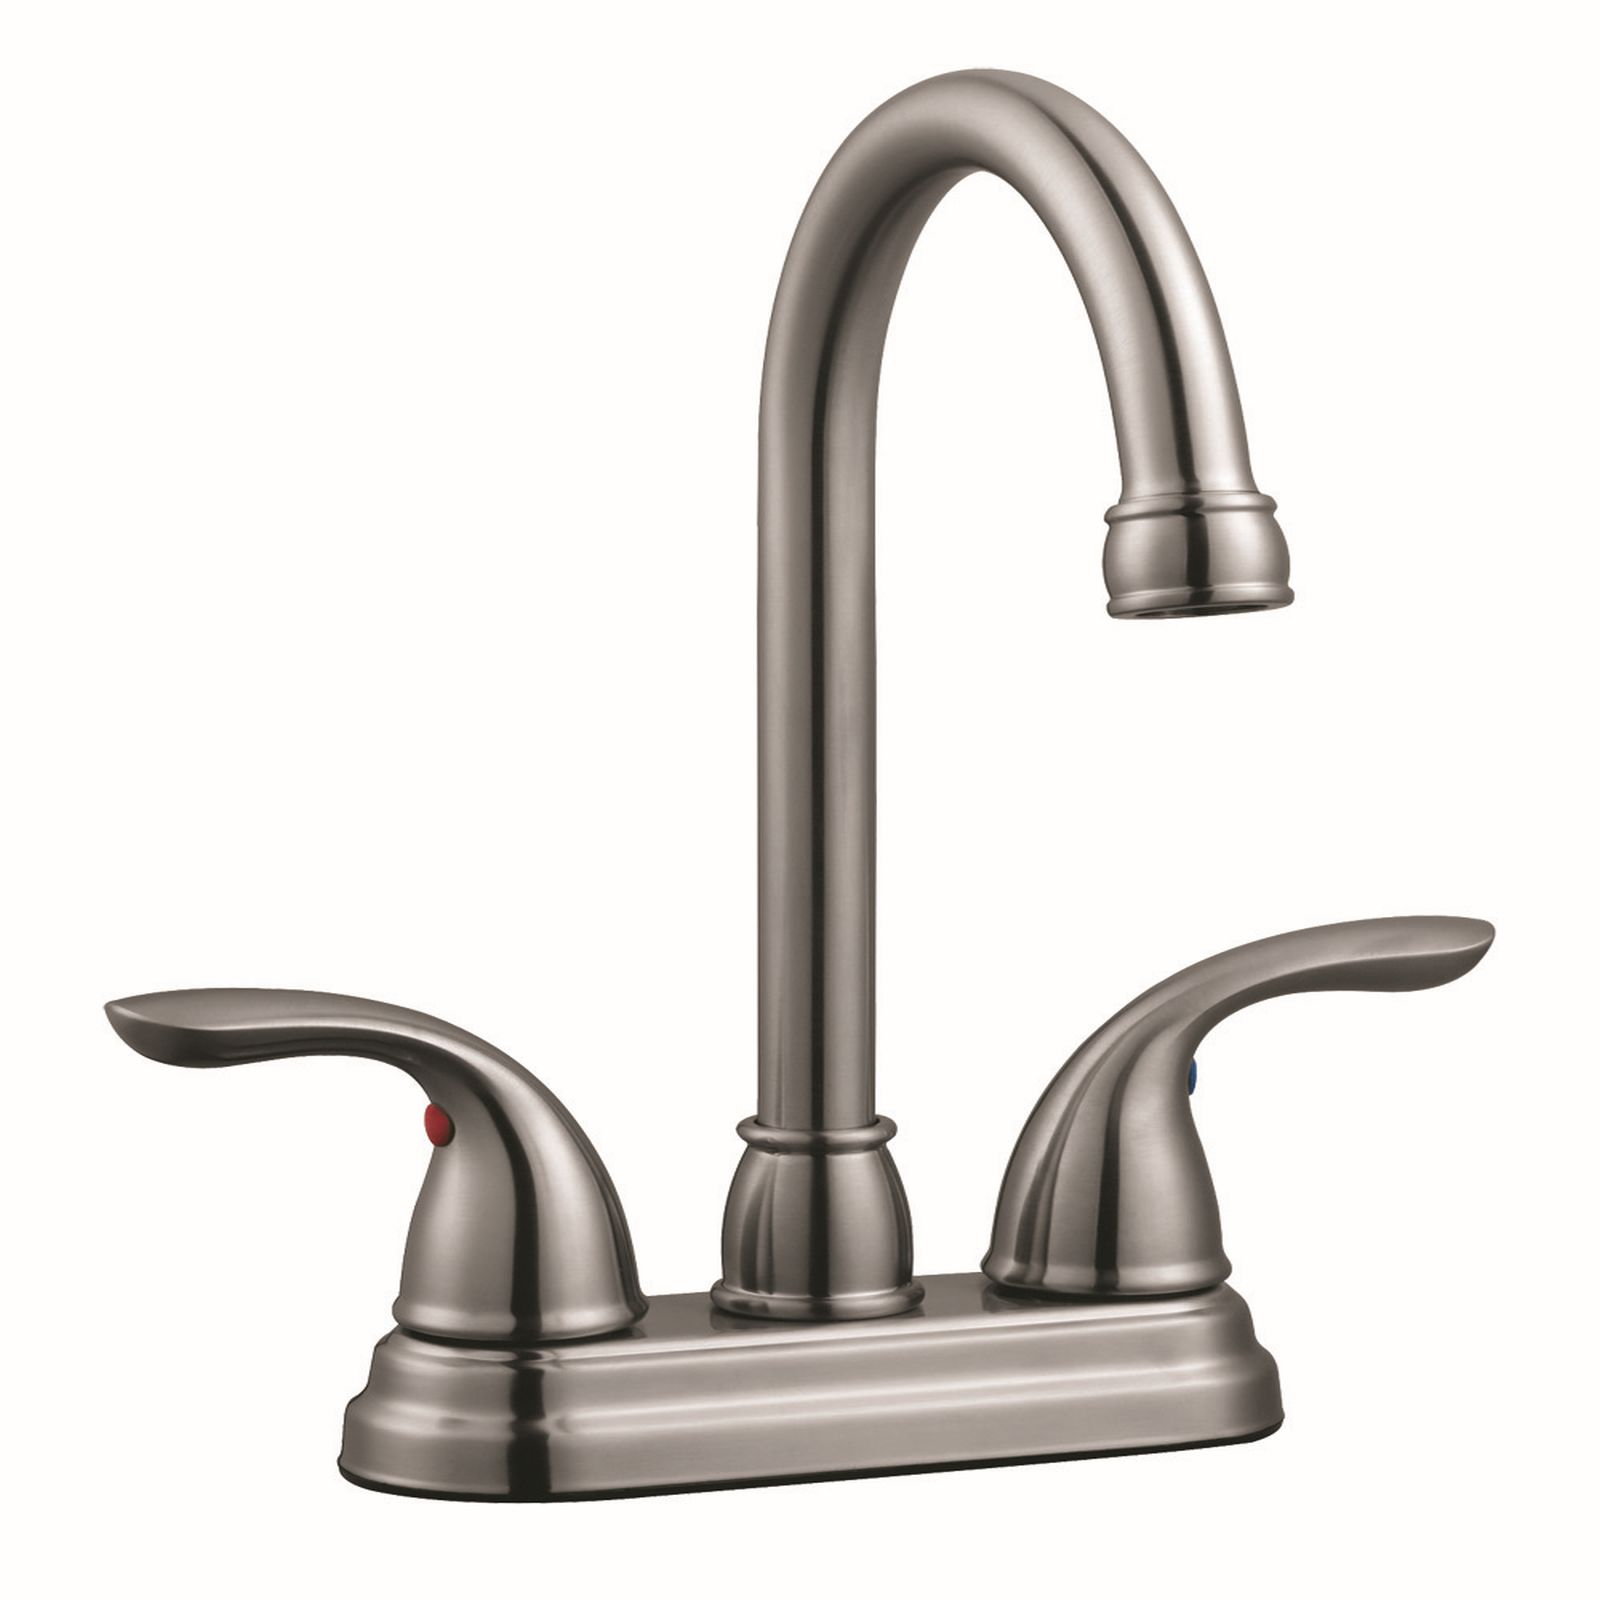 sears kitchen faucets hell games design house 525113 ashland bar faucet satin nickel finish